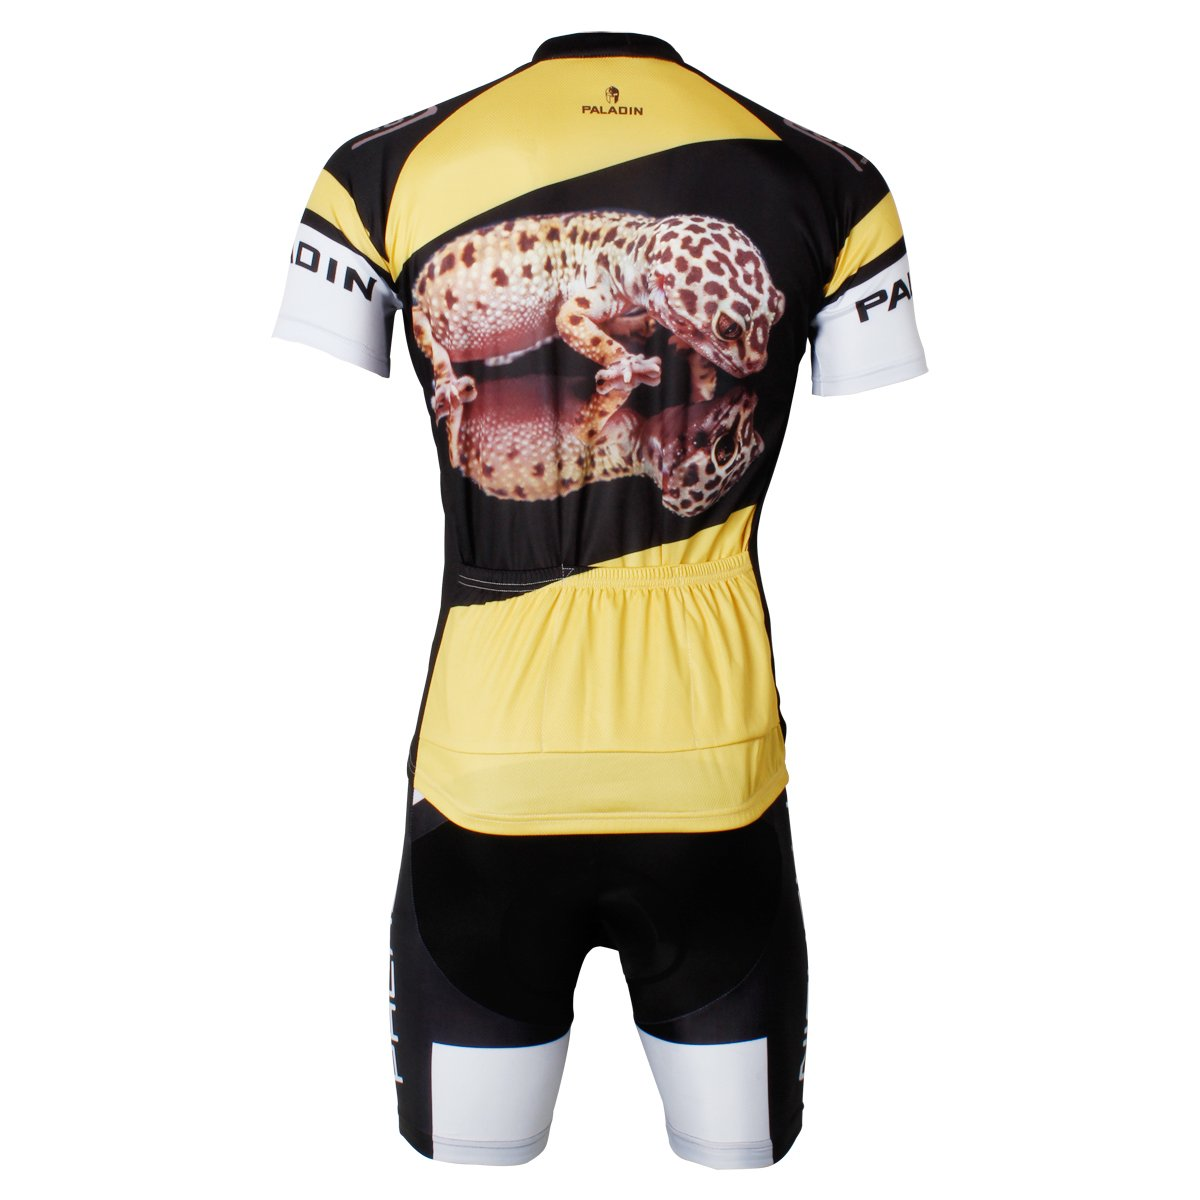 e215bda22 Amazon.com   Paladin Breathable Men s Cycling Jersey Set Short Sleeve  Lizard Pattern Tight Design   Sports   Outdoors